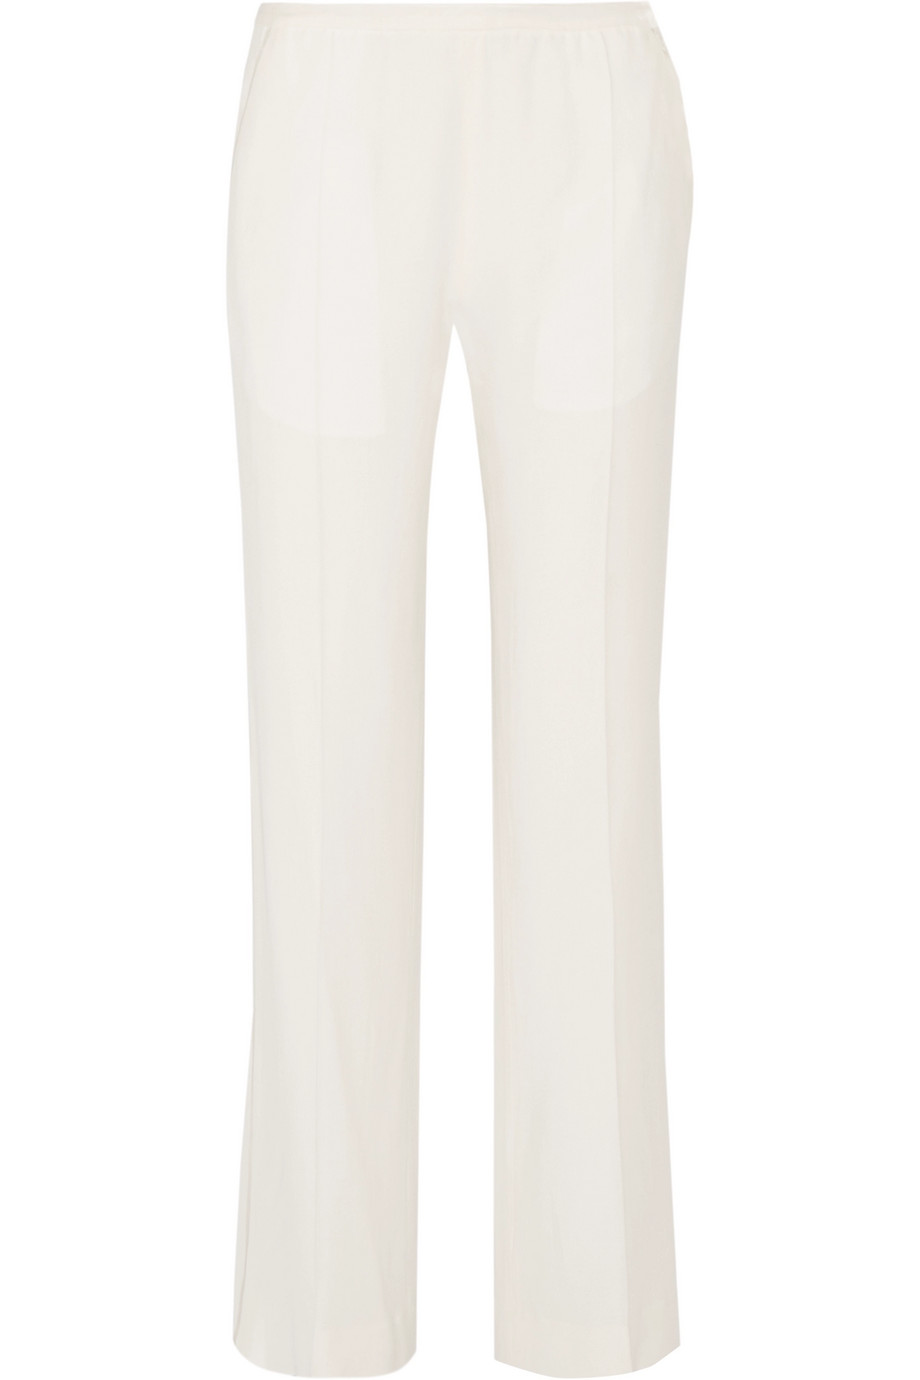 Satin-Trimmed Crepe Wide-Leg Pants, Haider Ackermann, Ivory, Women's, Size: 42